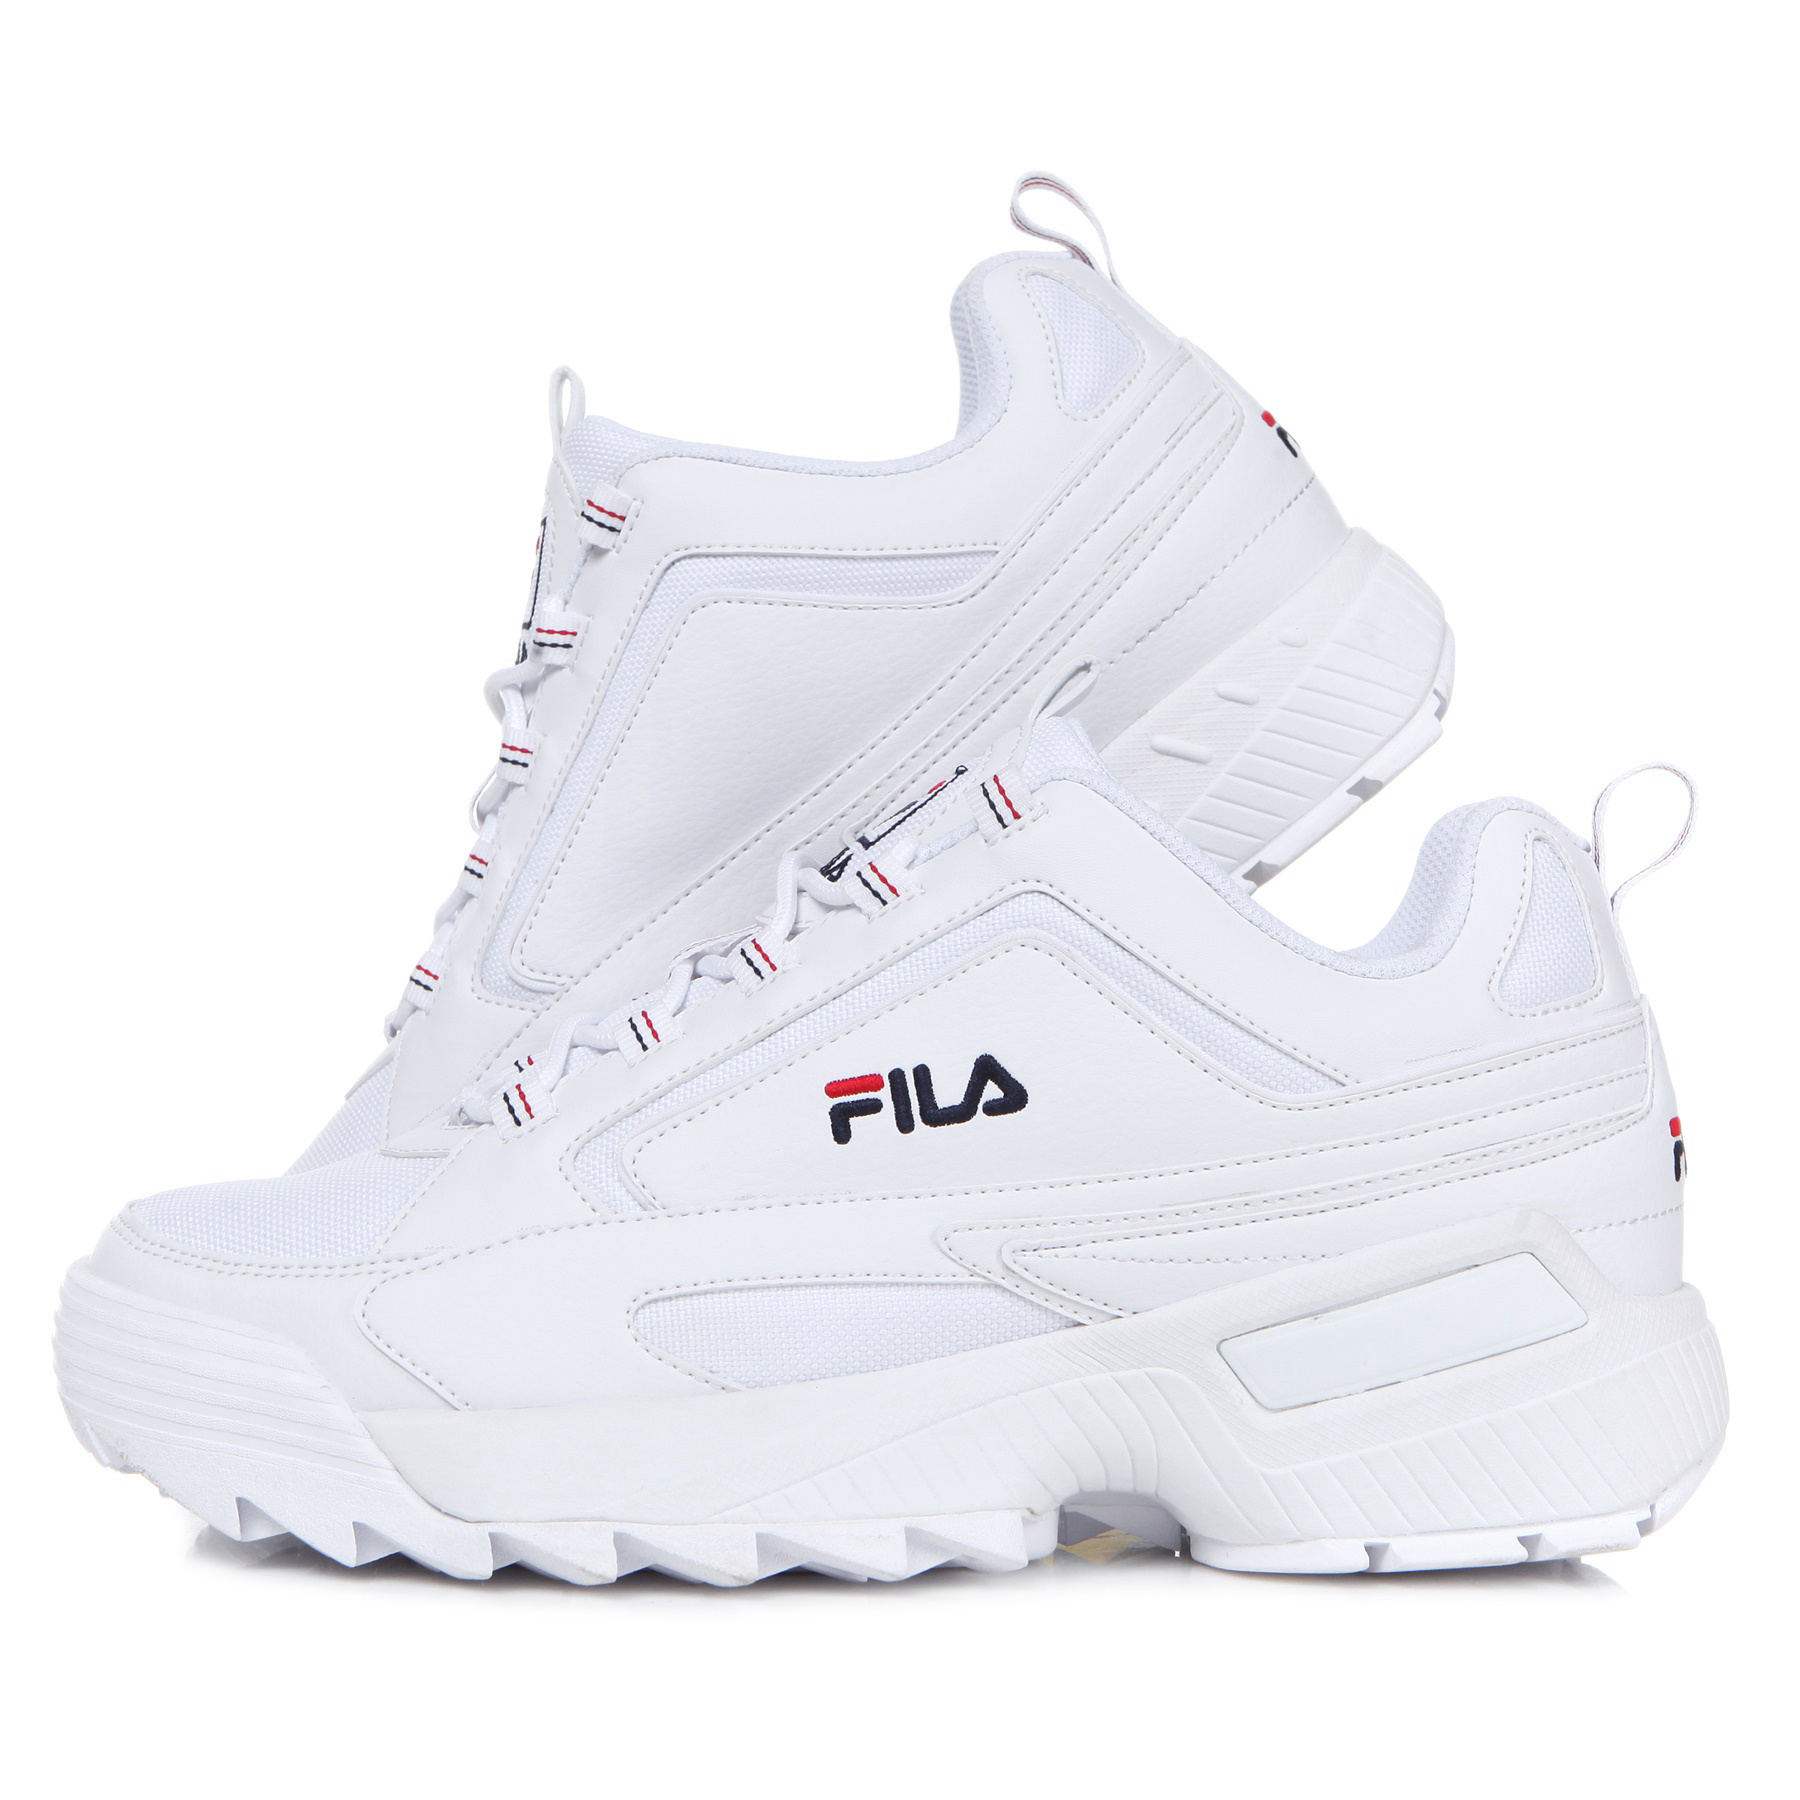 FILA UGLY SOOES 썸네일 이미지 5